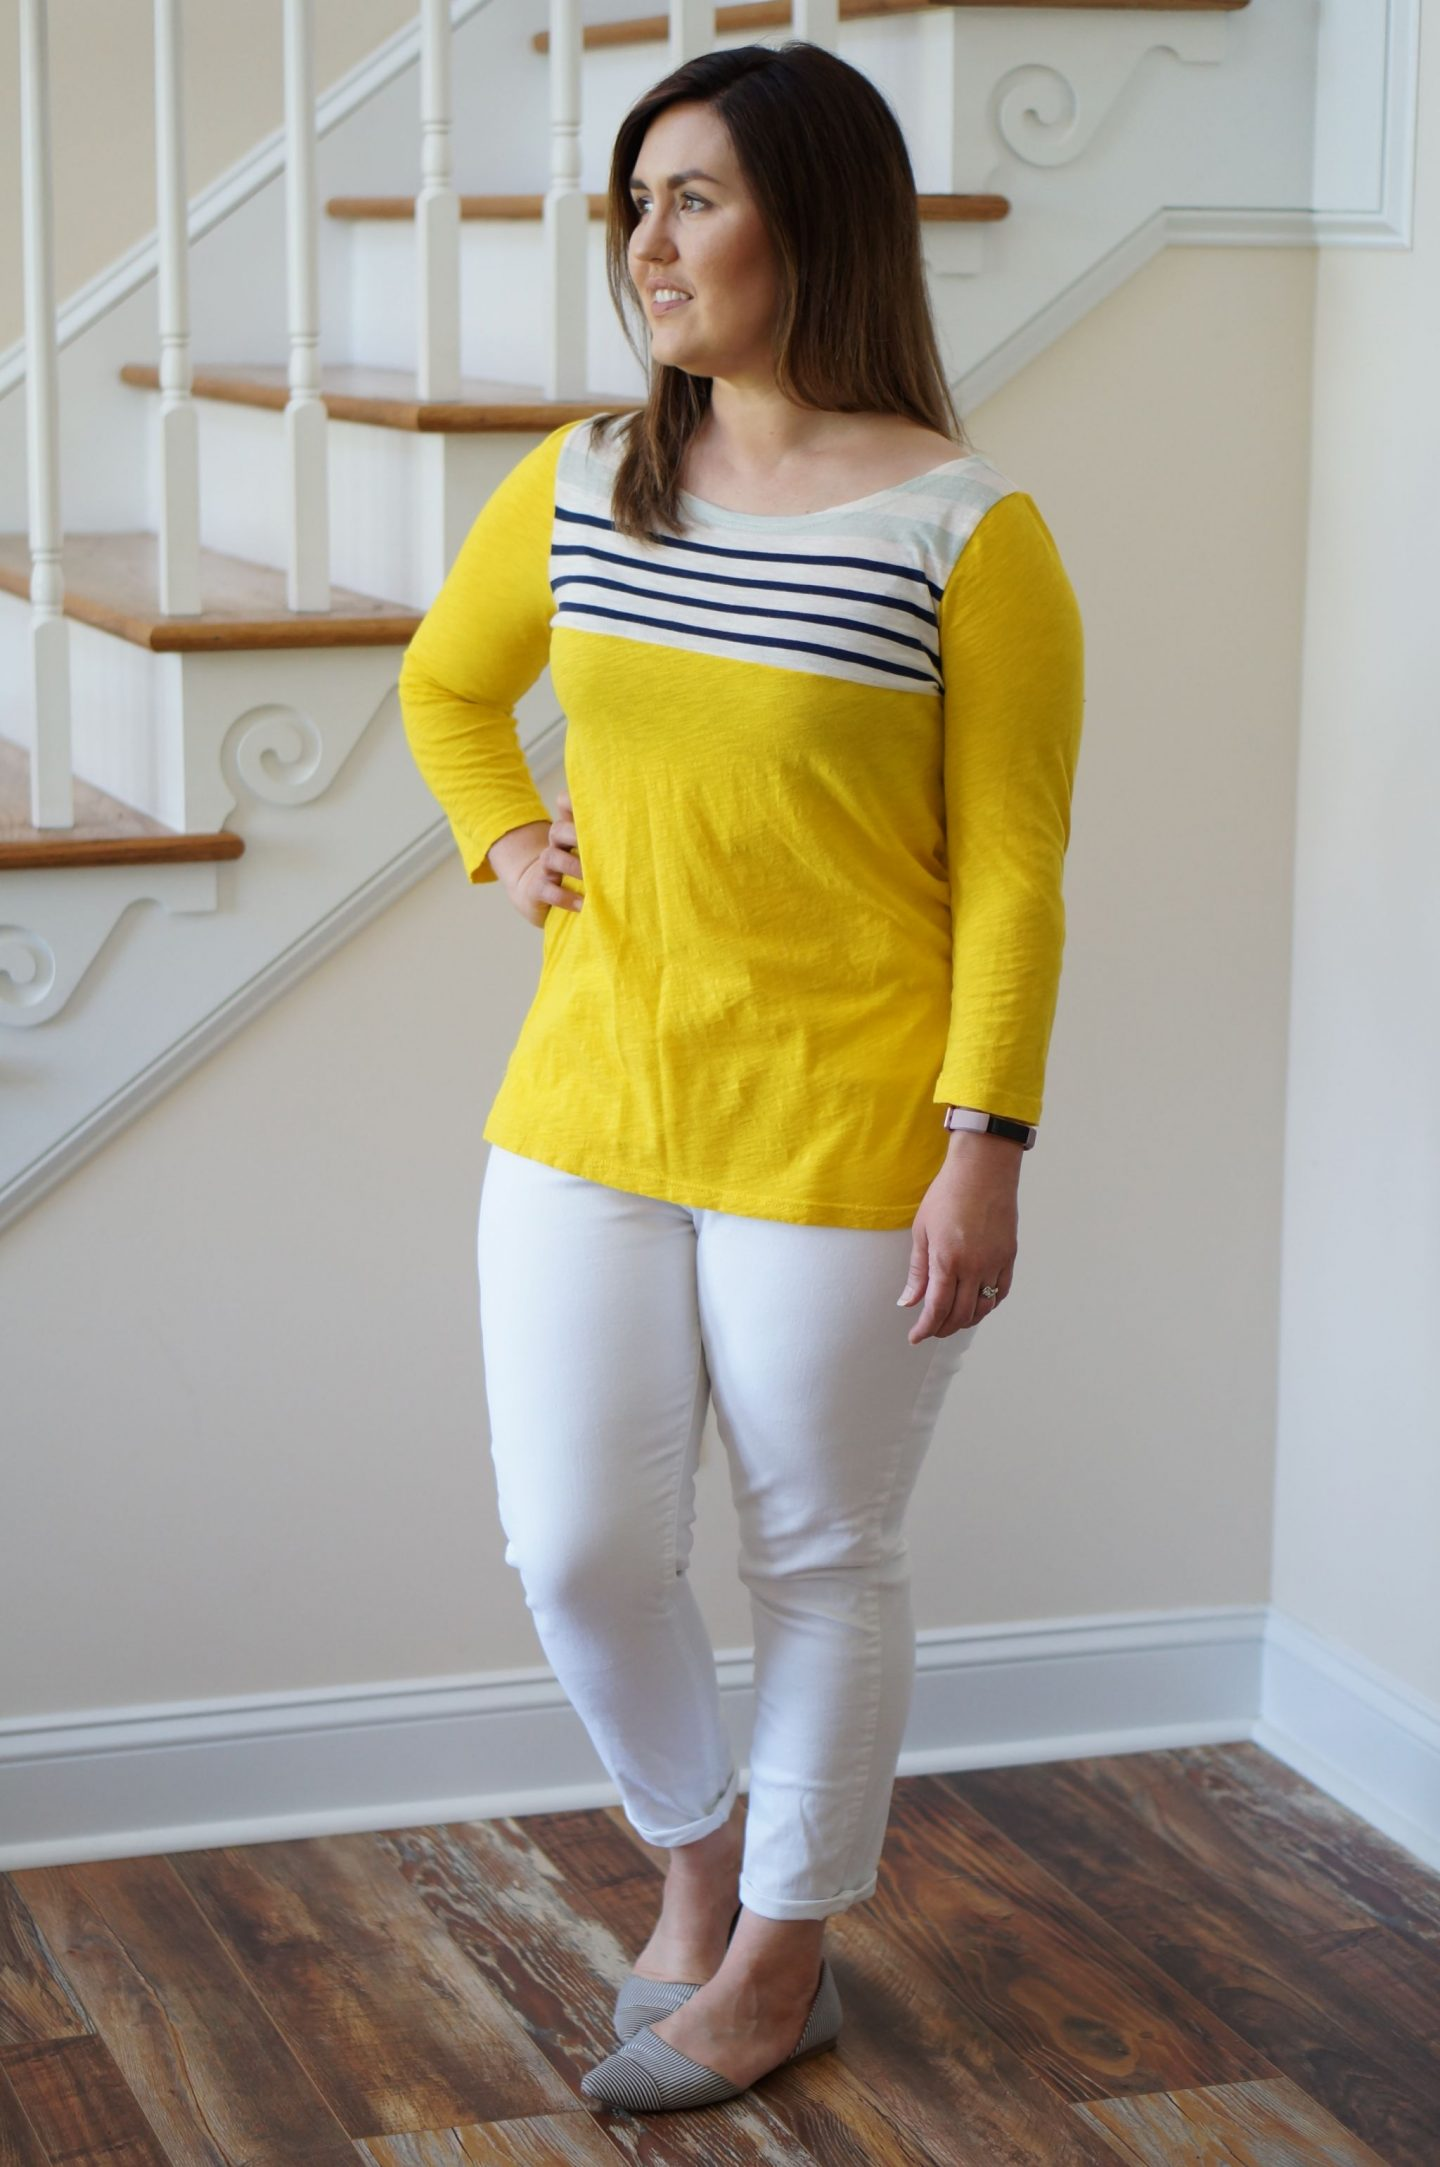 Rebecca Lately shares her Madewell top that's made it through all her wardrobe purges over the year.  You just can't go wrong with yellow!